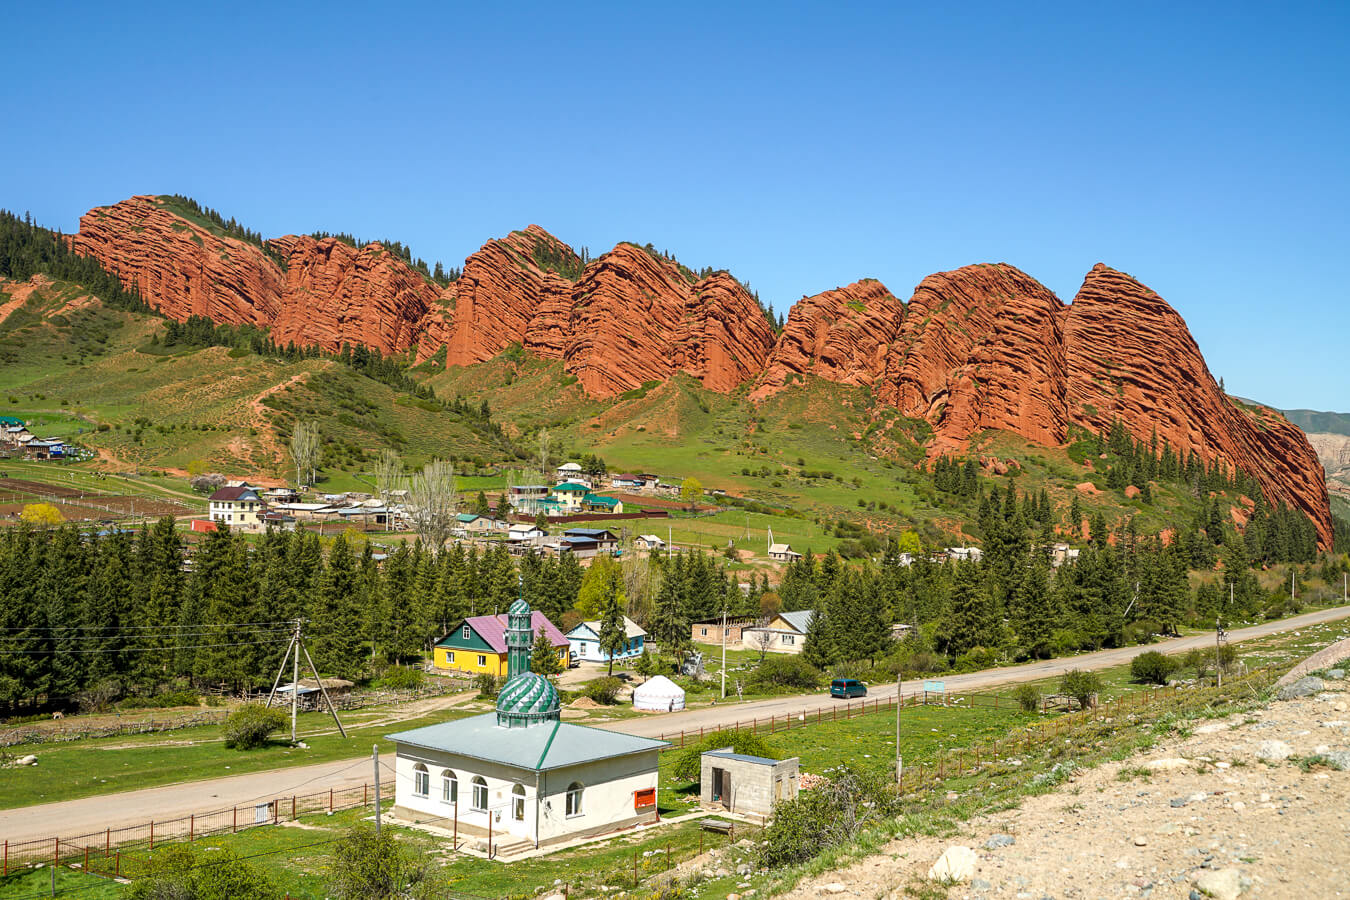 Djeti Oguz valley with red rock cliffs in Kyrgyzstan